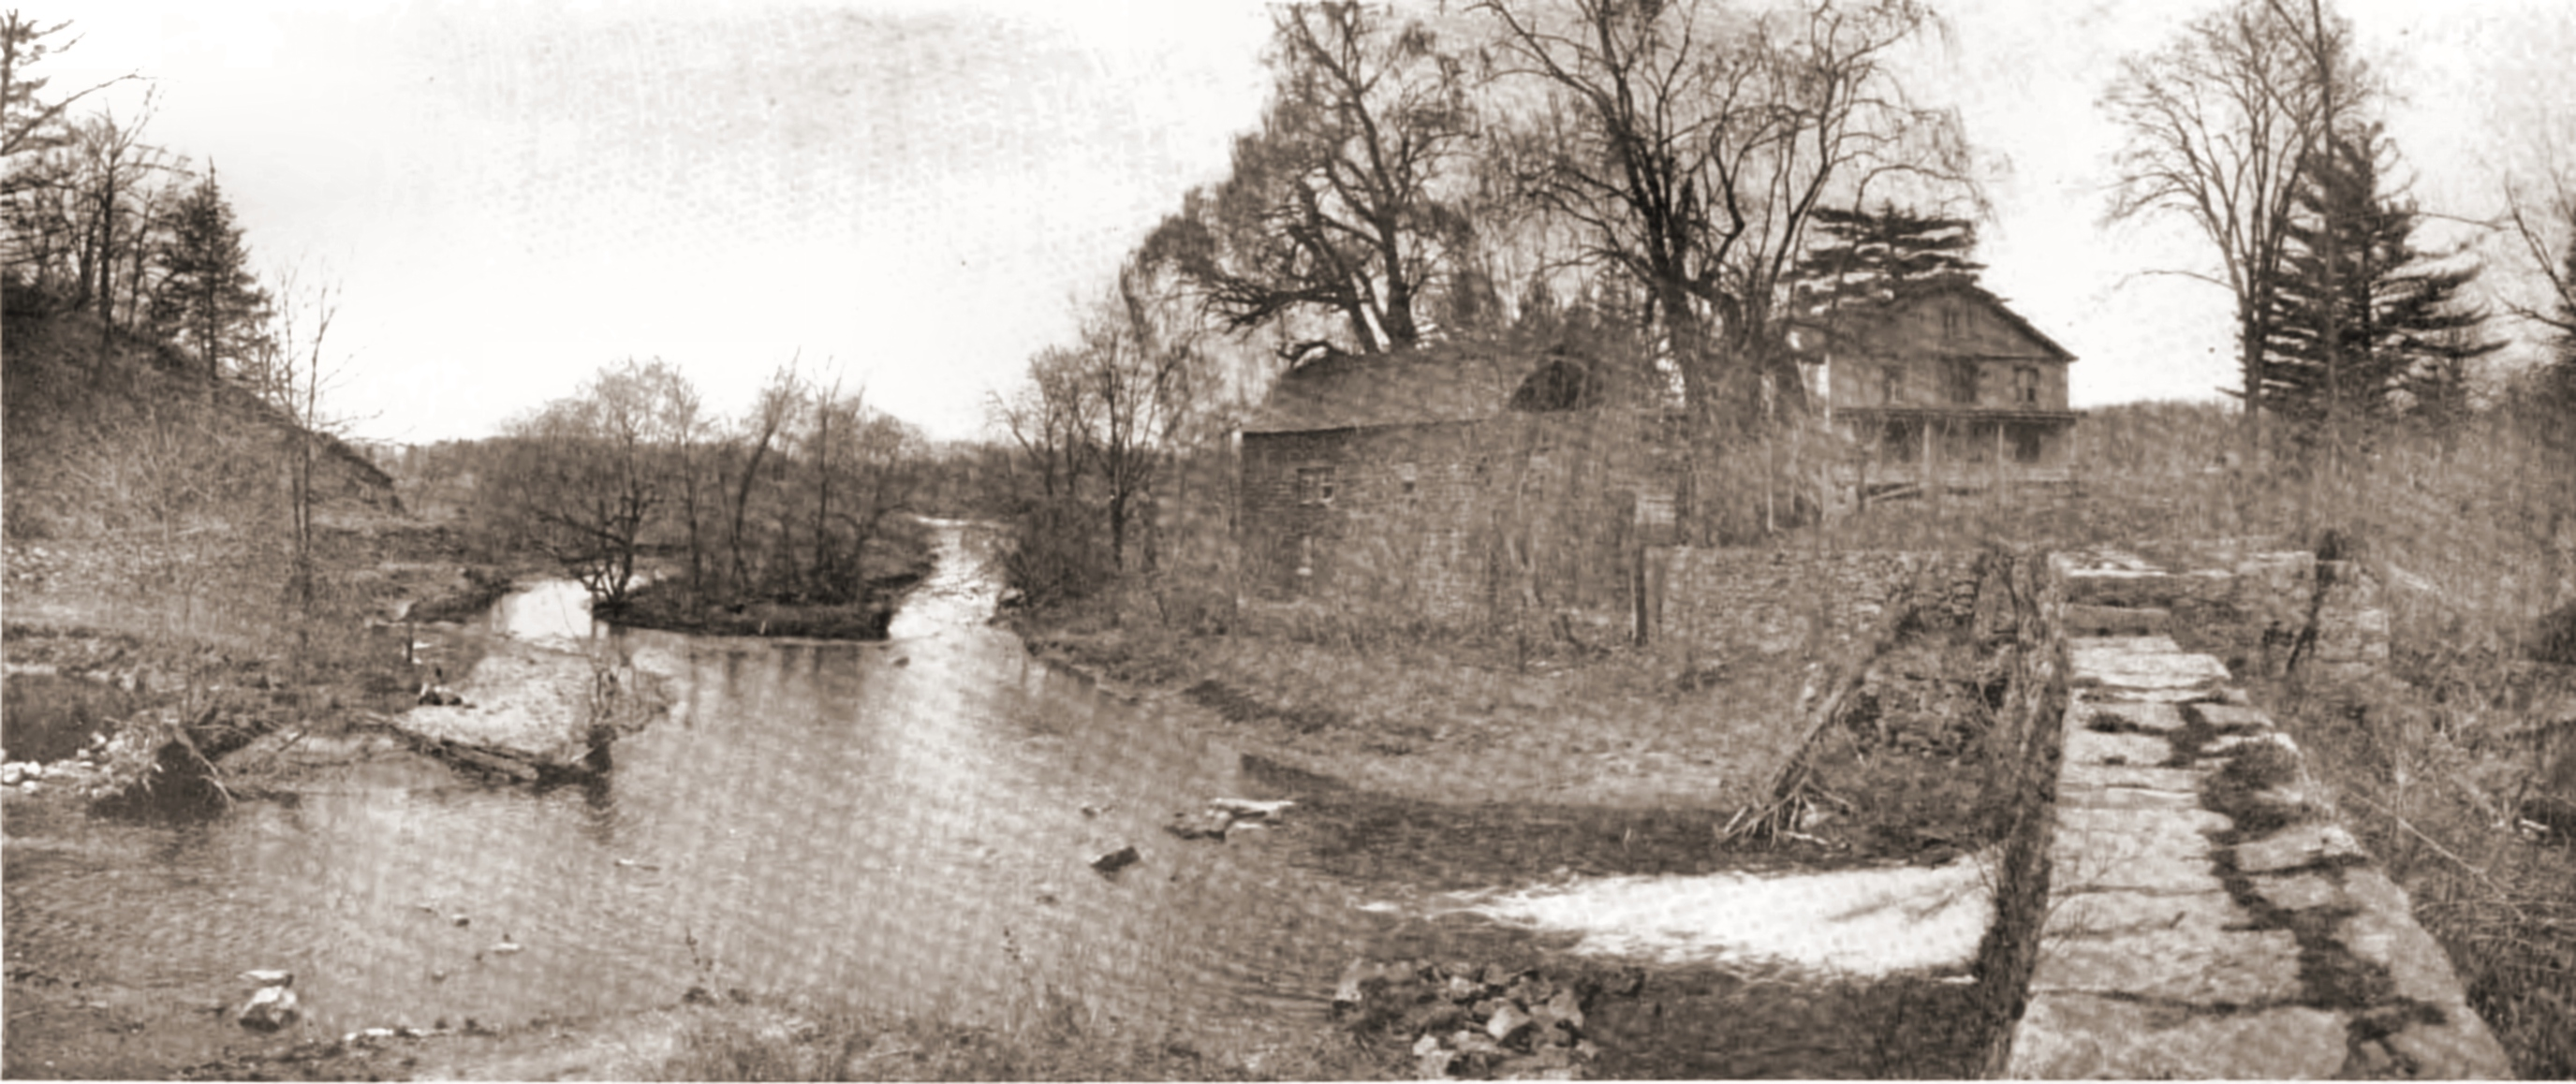 The Philipse Mill and the Old Dutch Church in Sleepy Hollow 1903